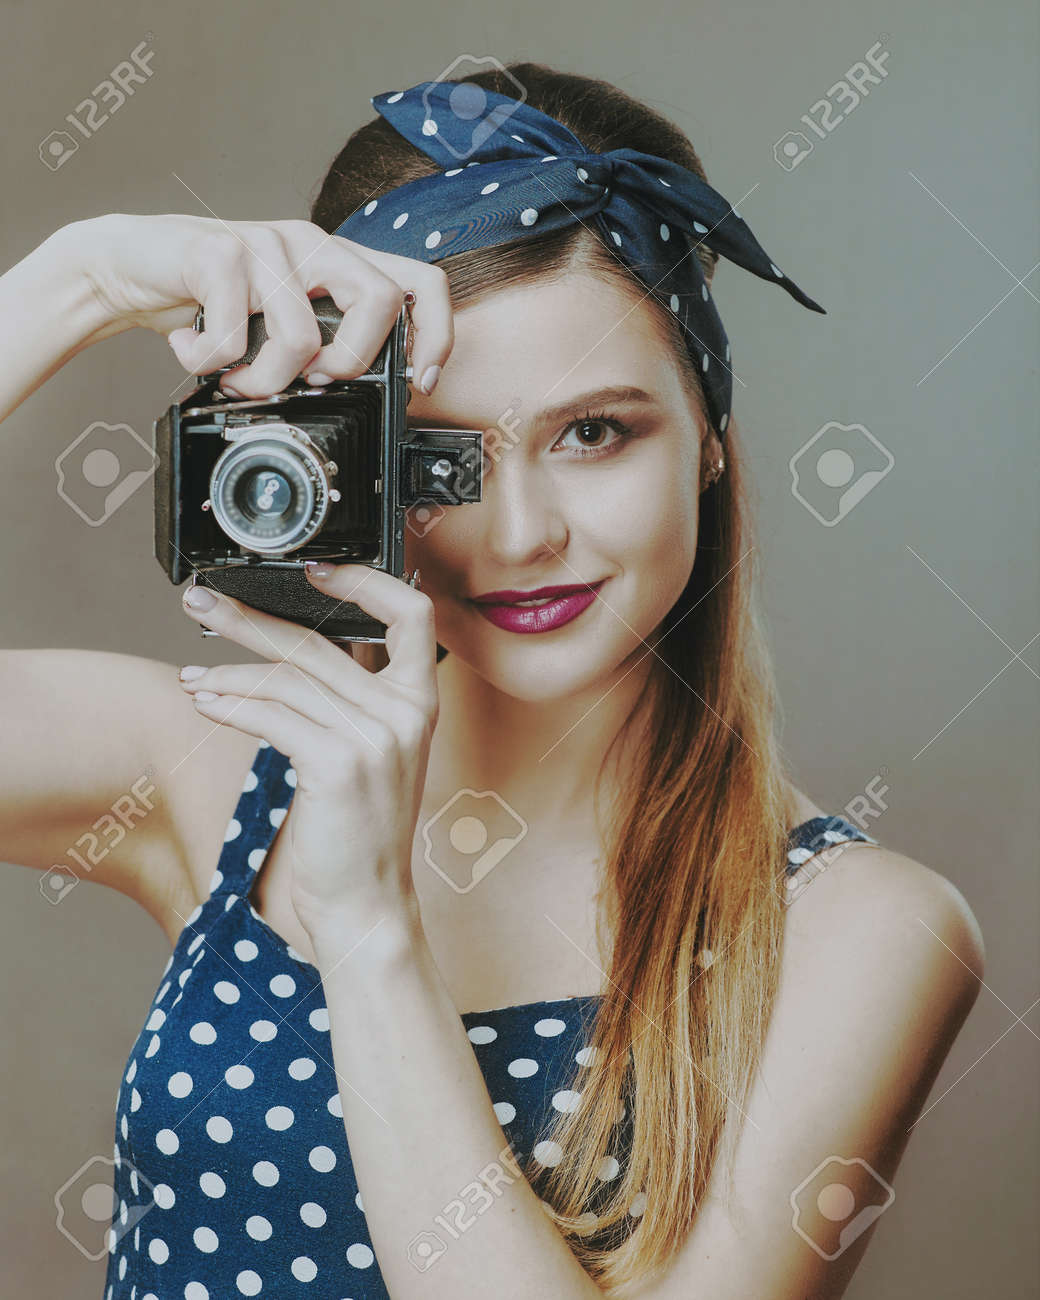 Photographer. Female Pinup Portrait. Young adult woman posing with vintage photo camera - 159316742